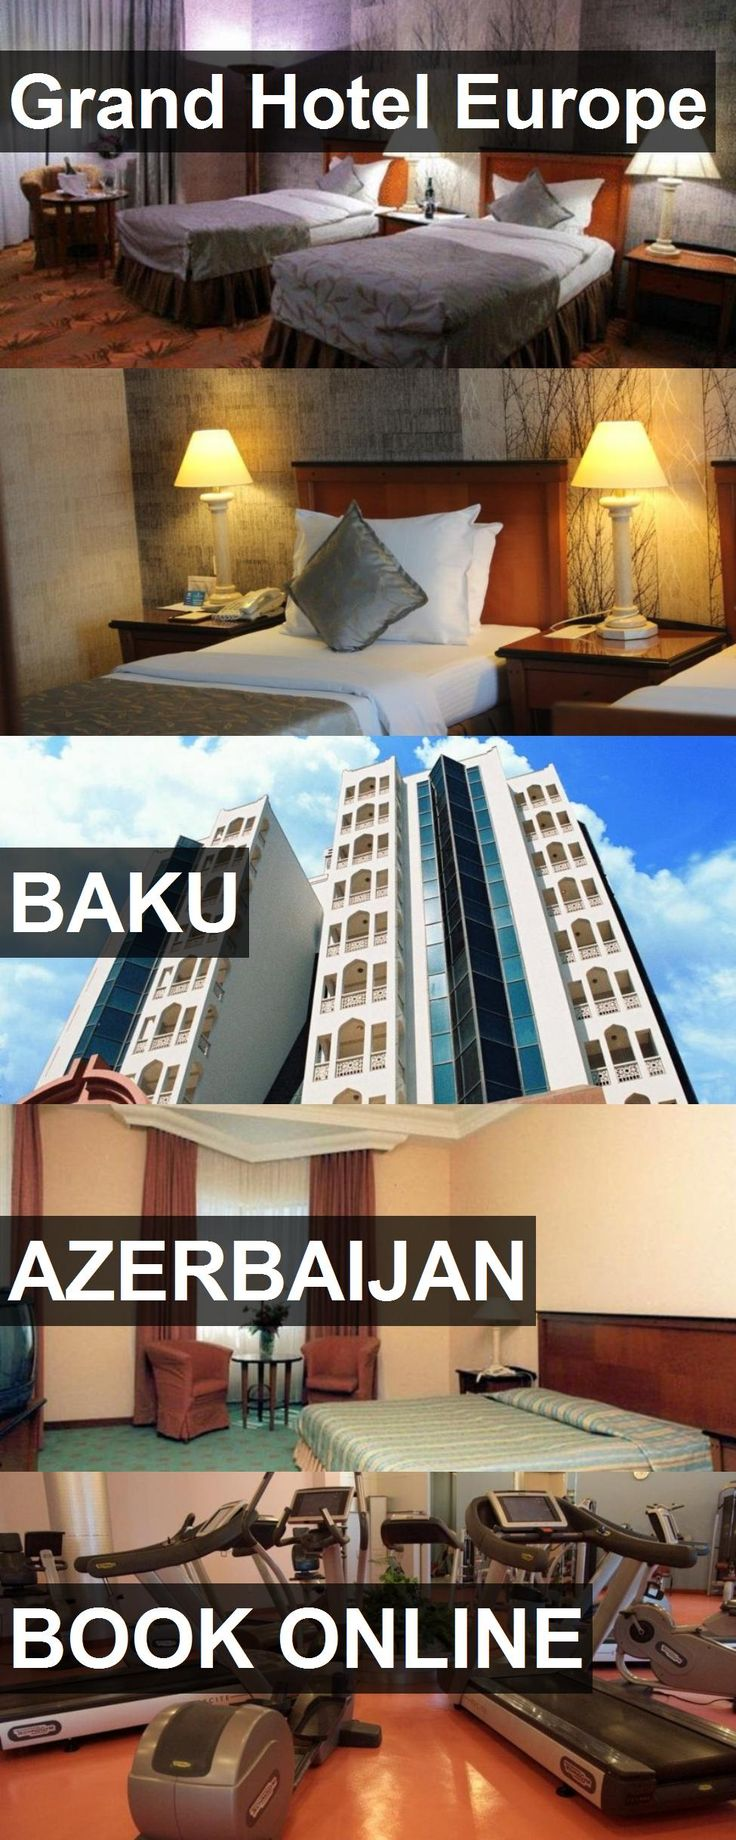 Hotel Grand Hotel Europe in Baku, Azerbaijan. For more information, photos, reviews and best prices please follow the link. #Azerbaijan #Baku #hotel #travel #vacation